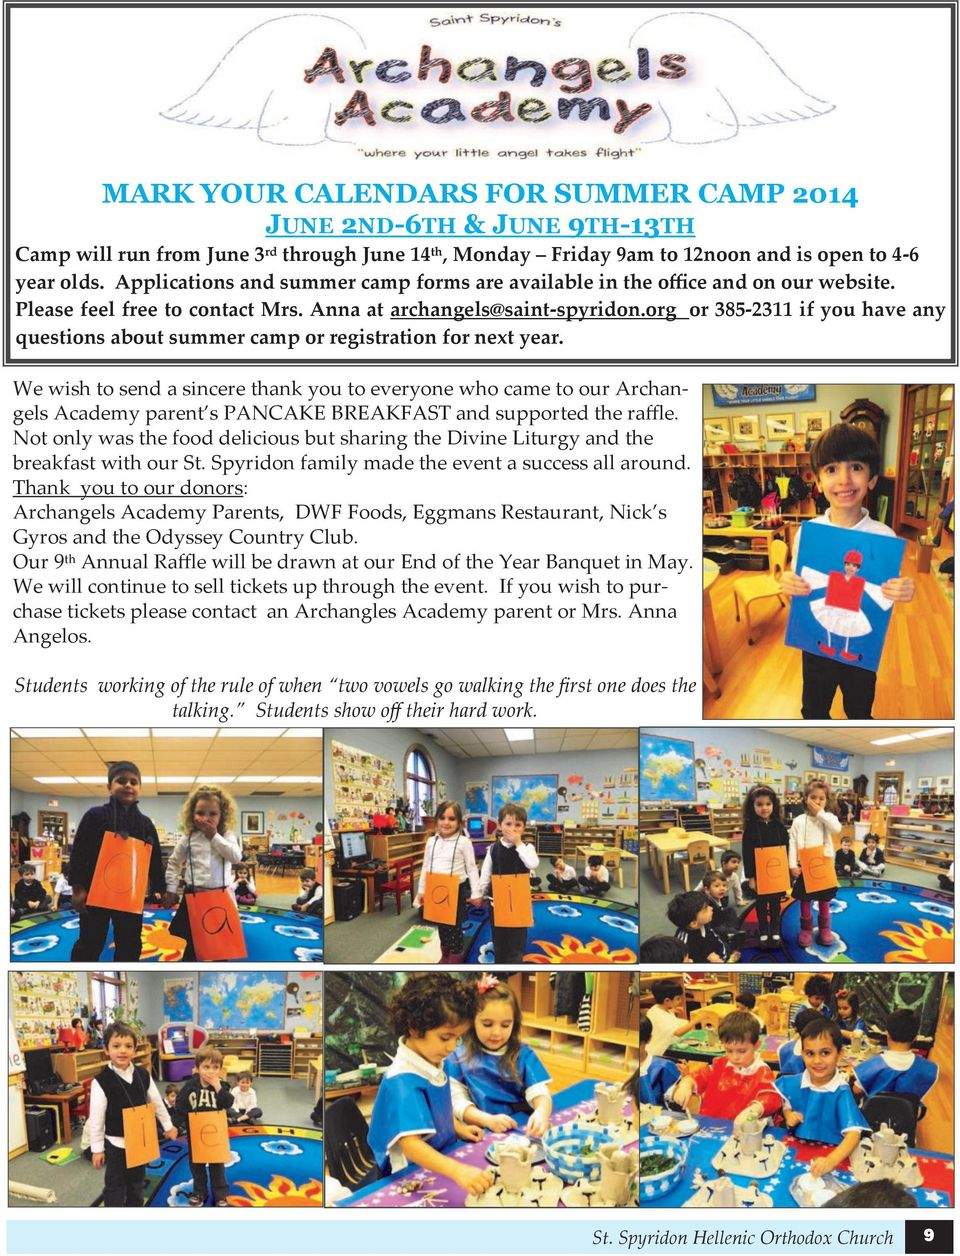 org or 385-2311 if you have any questions about summer camp or registration for next year.